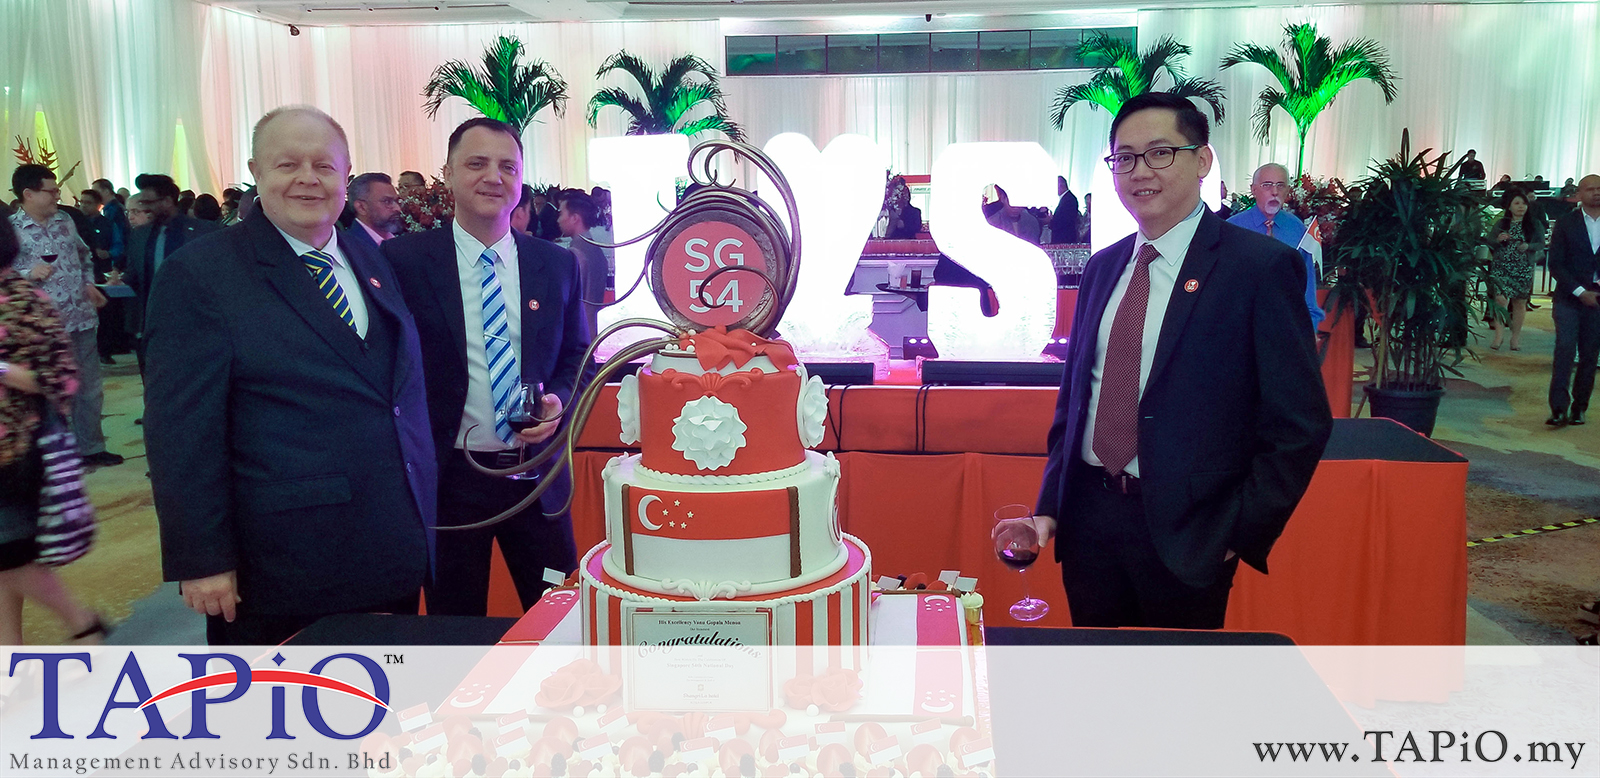 20190814 - Singapore 54th National Day